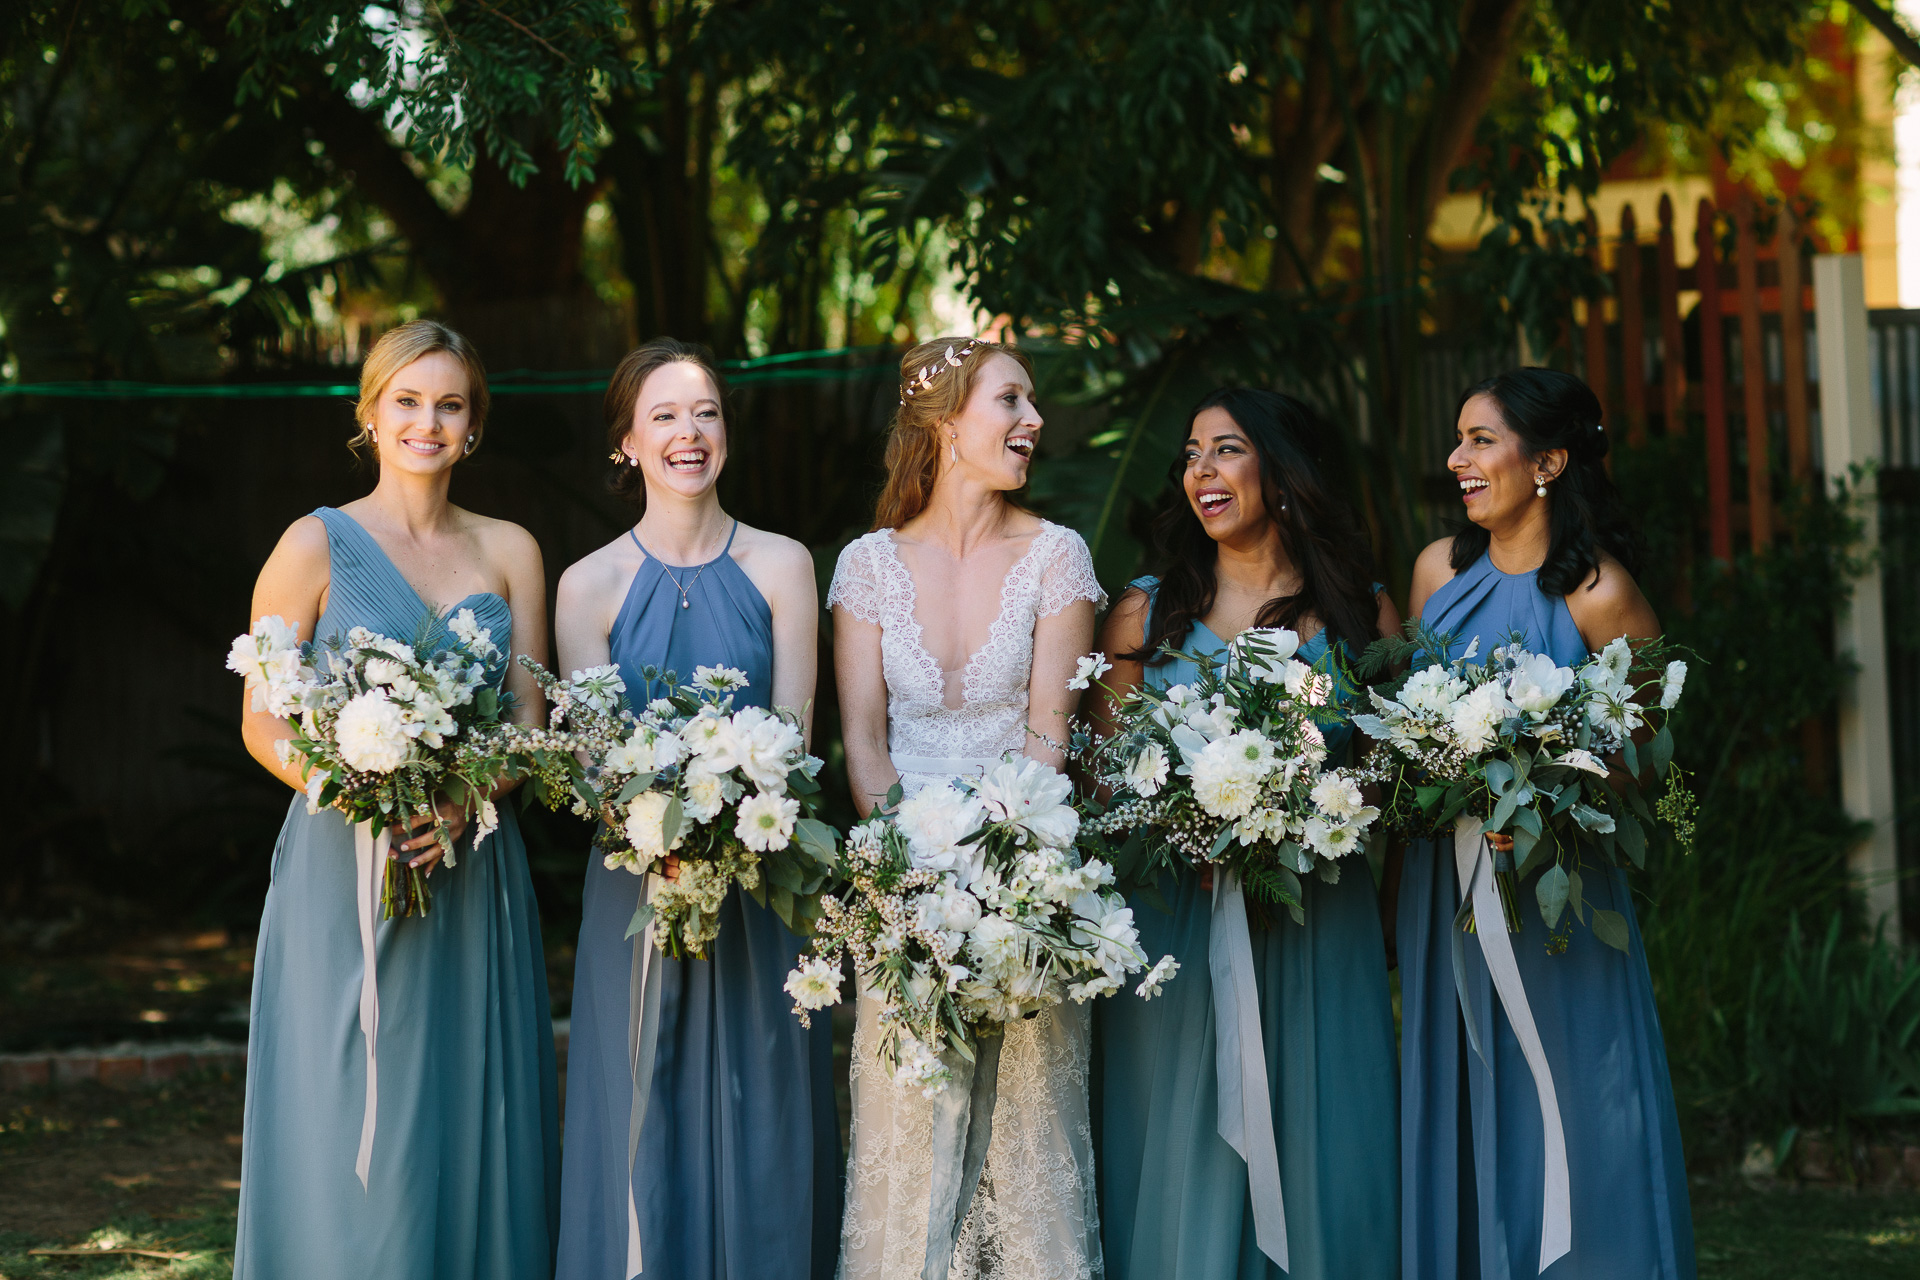 bridesmaids laughing , blue dresses, poppies flowers in garden